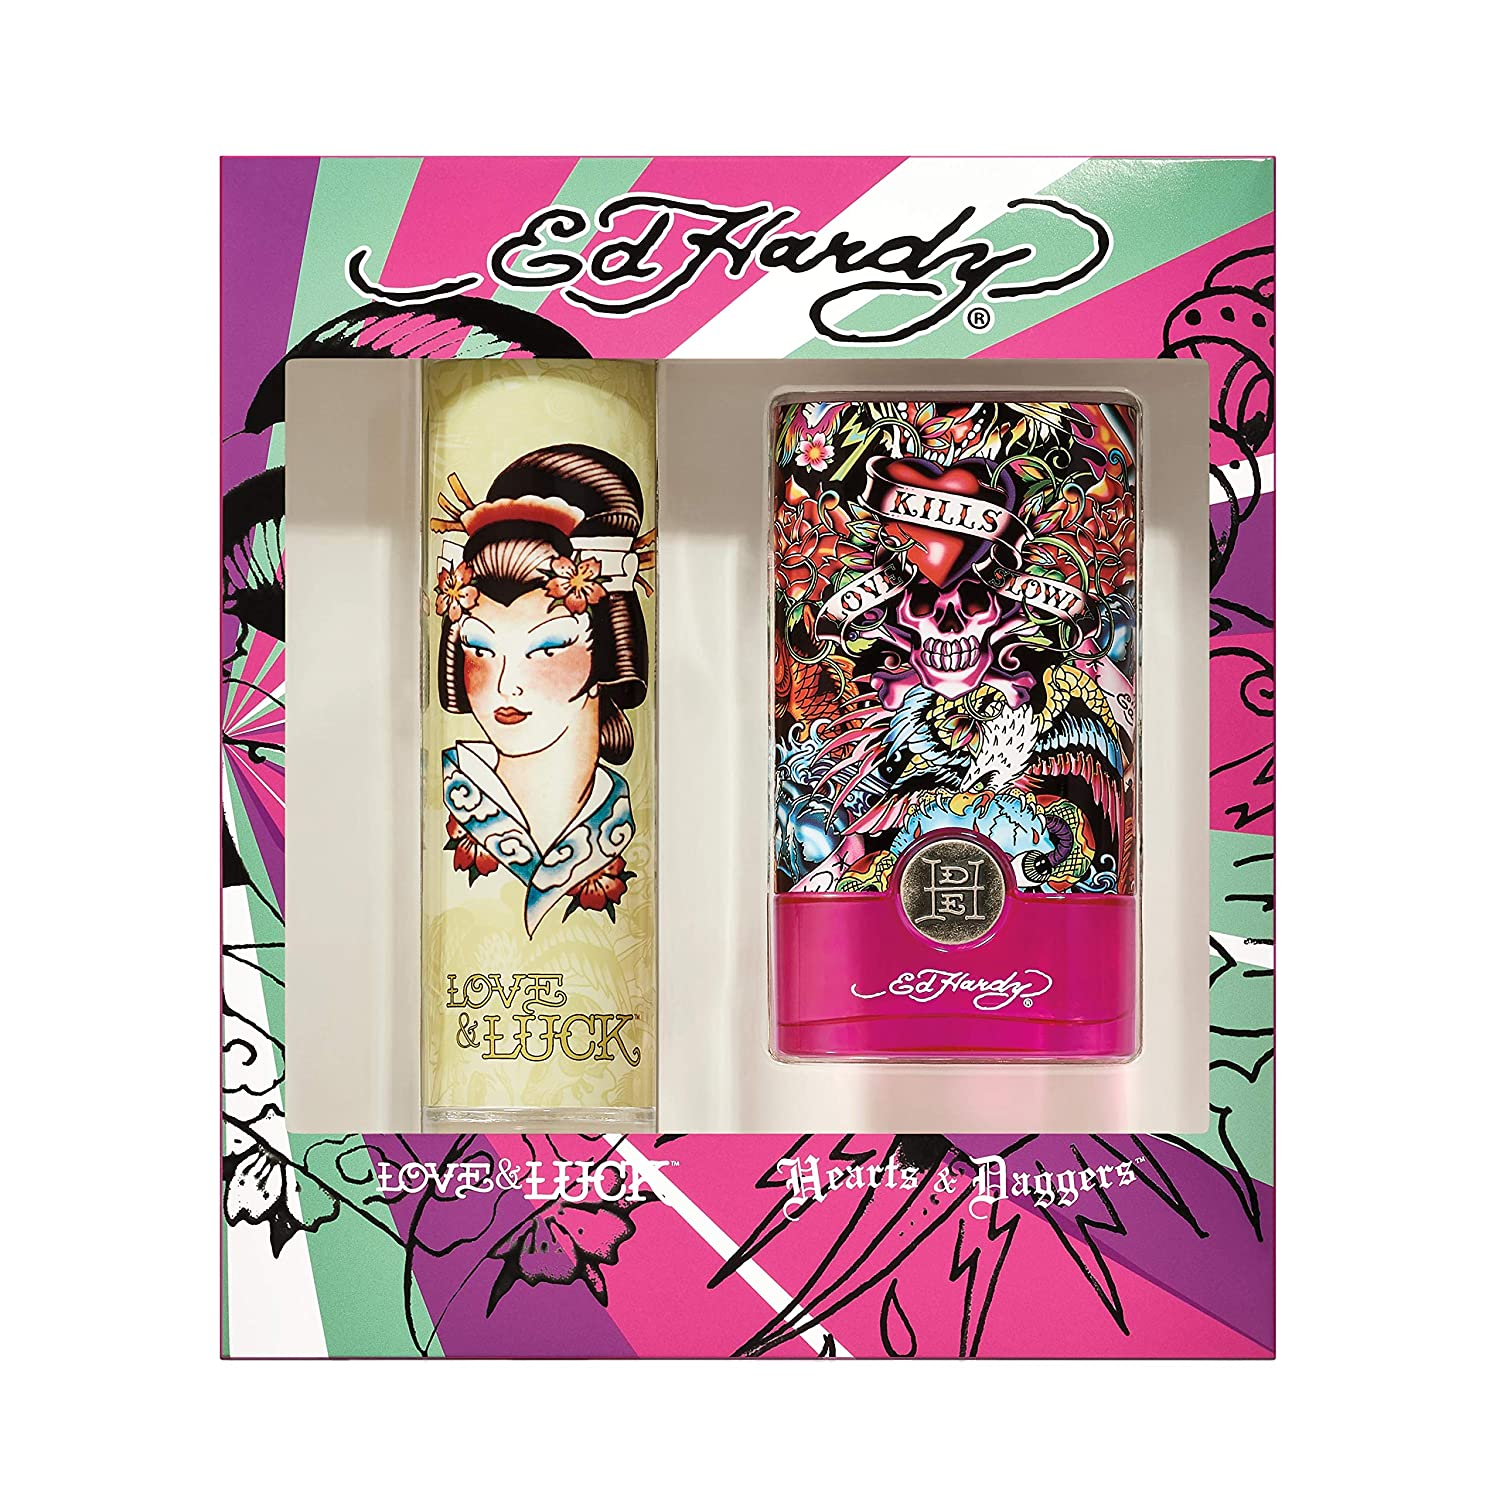 ED HARDY Women's Fragrance 2 Piece Gift 3.4 New products, world's highest quality popular! Set Oz Fl. Be super welcome